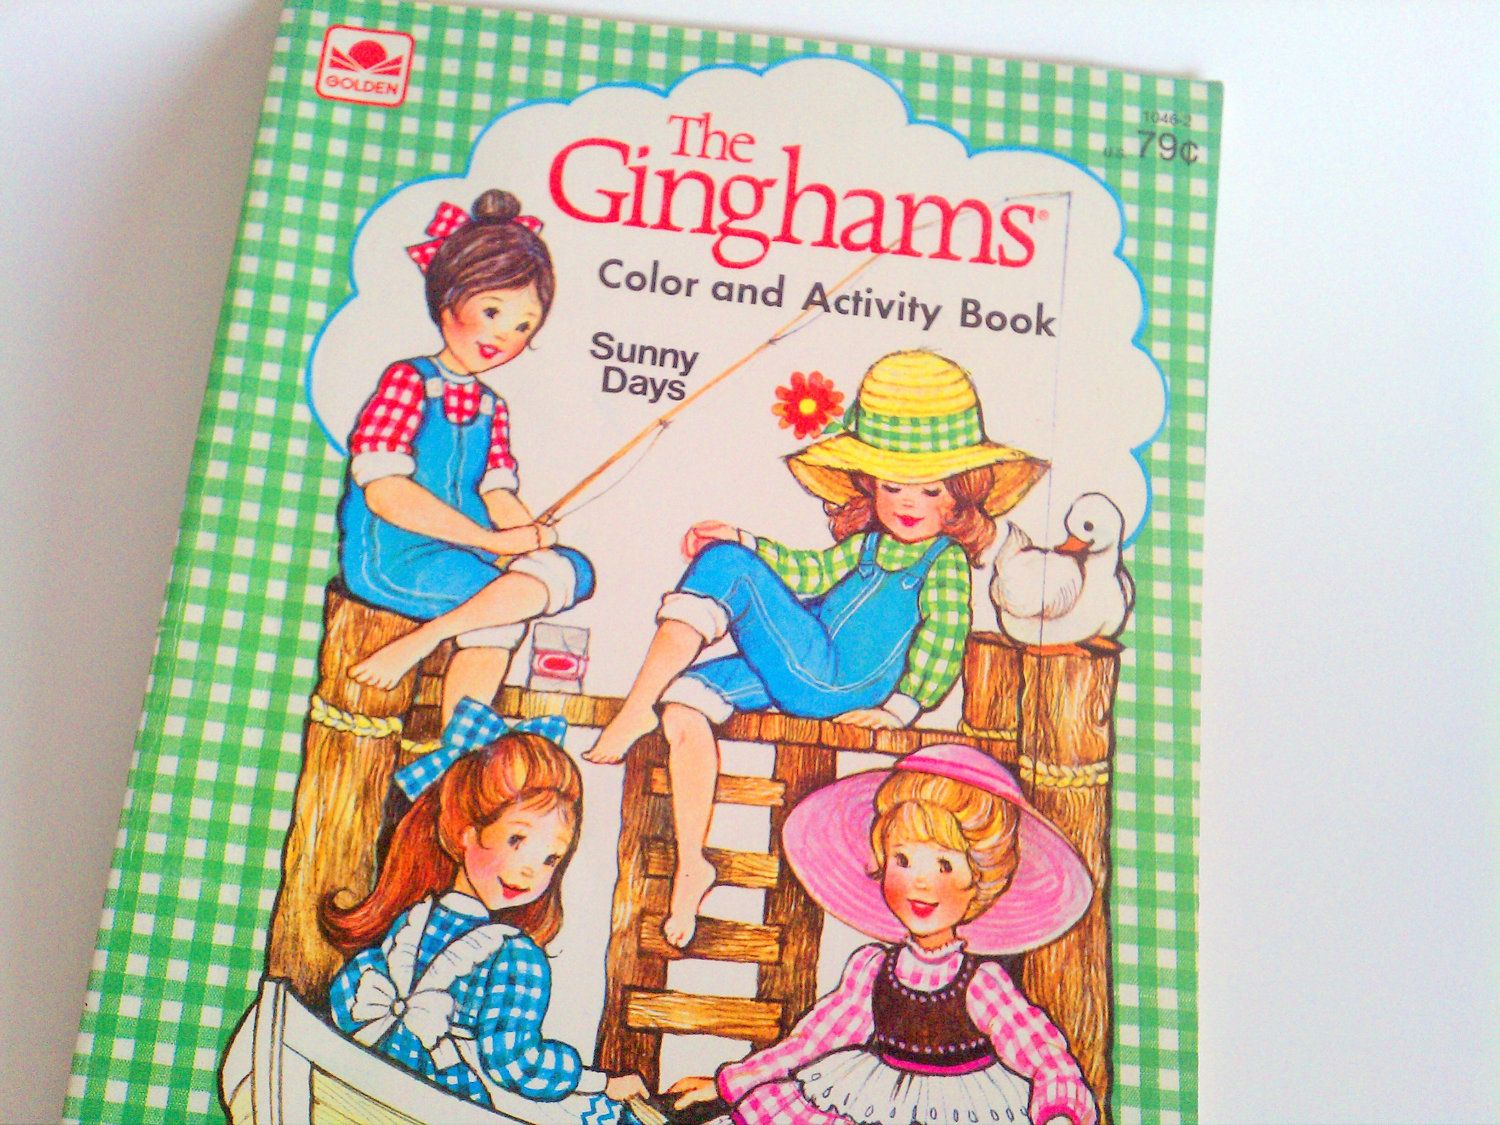 Whitman hot wheels coloring book - Vintage Coloring Book The Ginghams Whitman Color Activity Book 1970s 8 99 Via Etsy